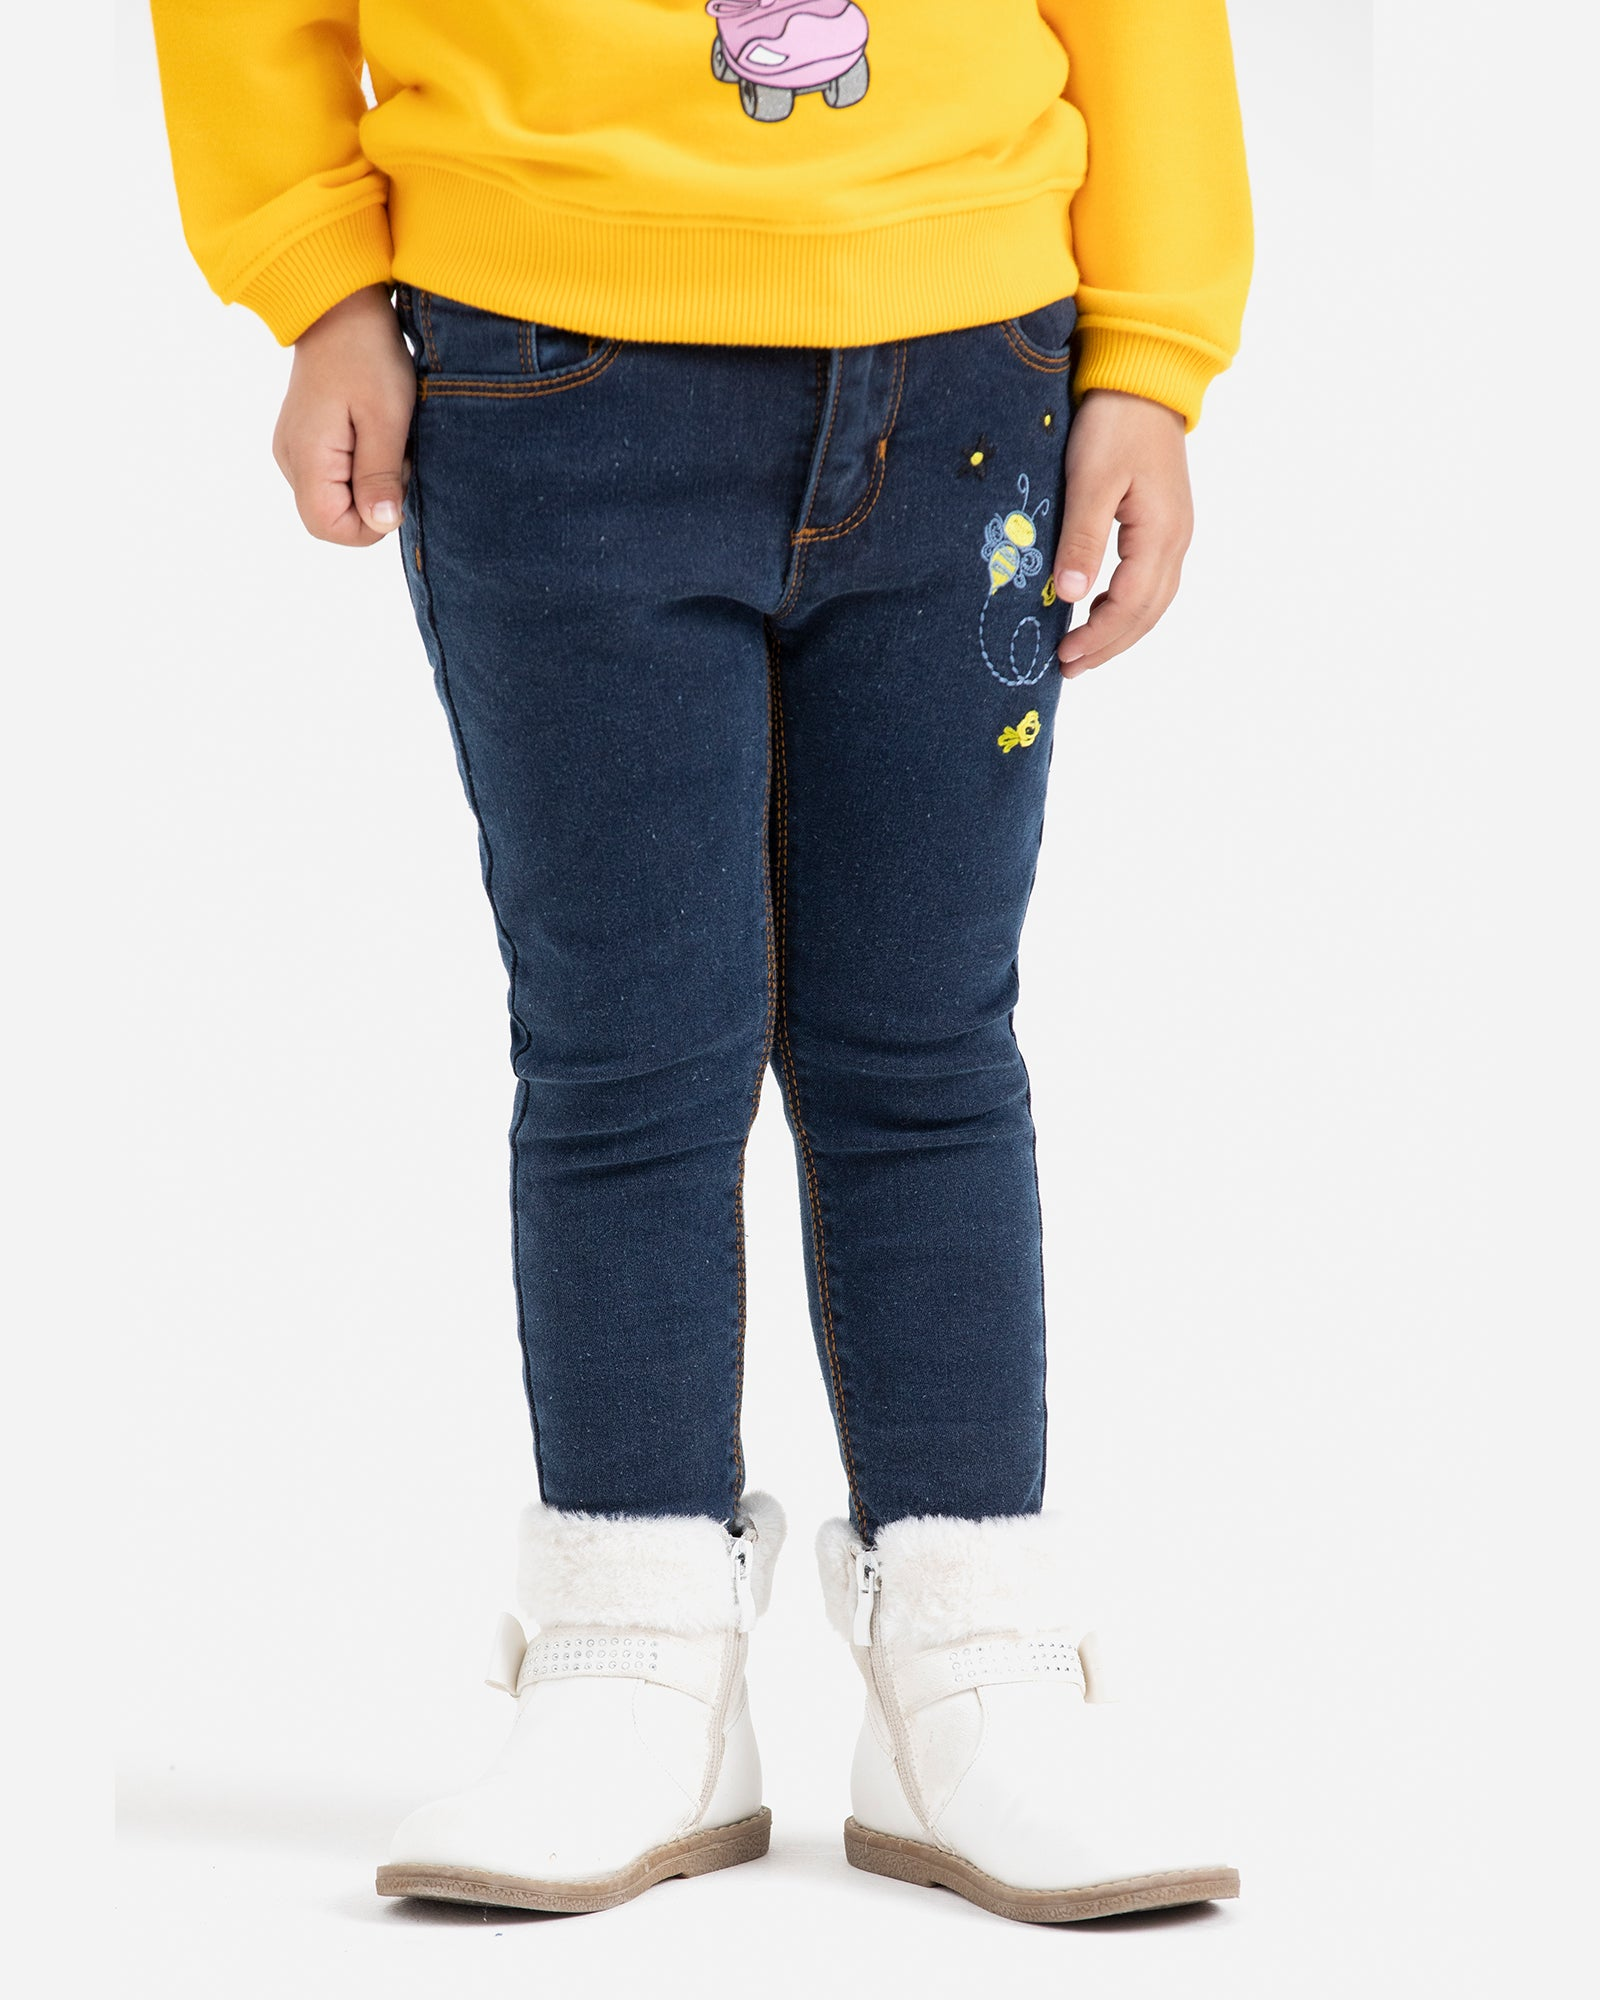 Honey Bee Embroidered Jeans